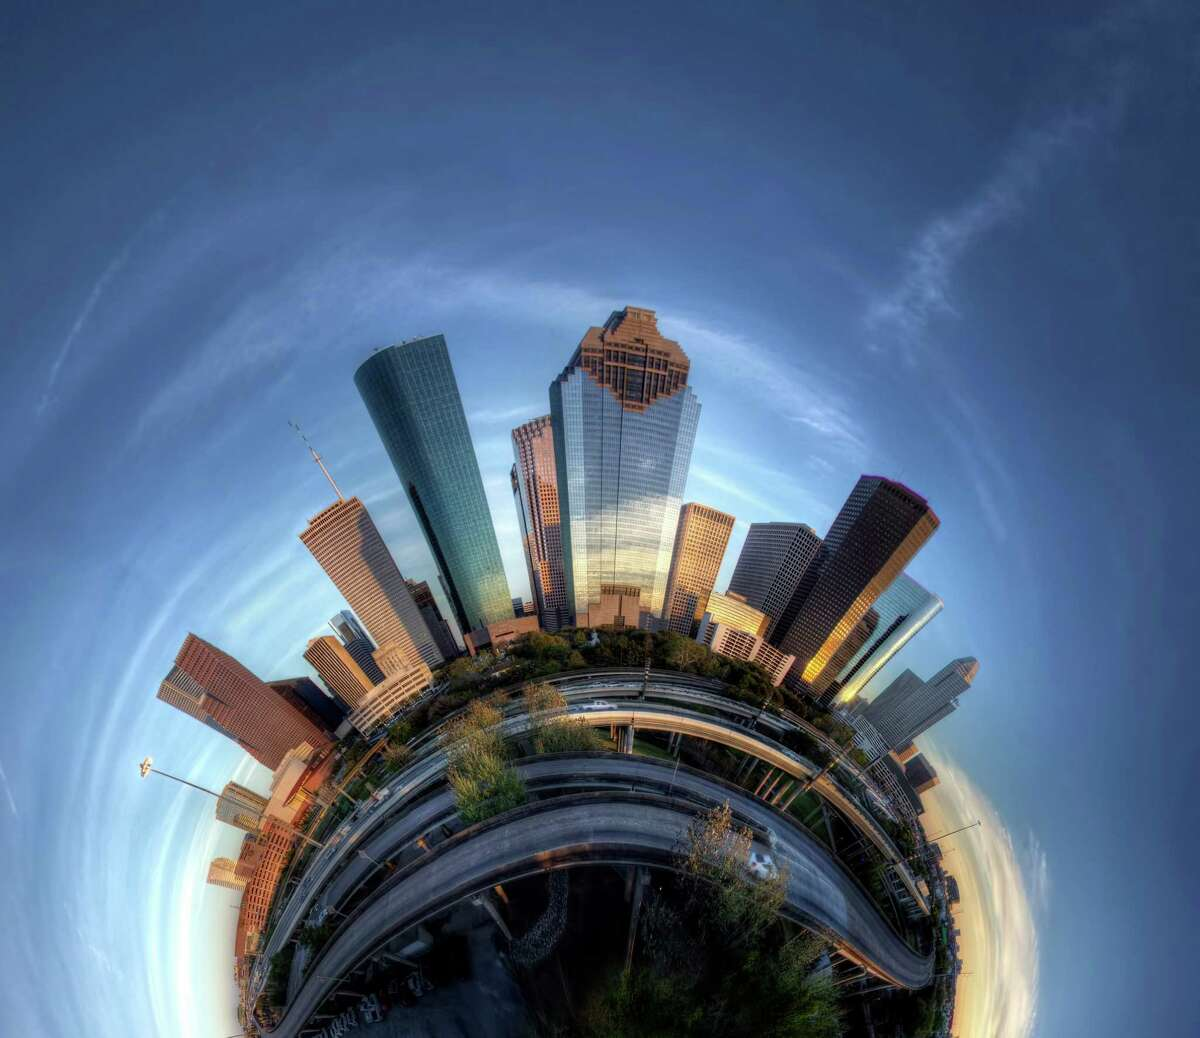 Houston is the state's largest city and the nation's fourth-largest. The metropolitan area's population is about 6.1 million, and the city itself encompasses more than 600 square miles.